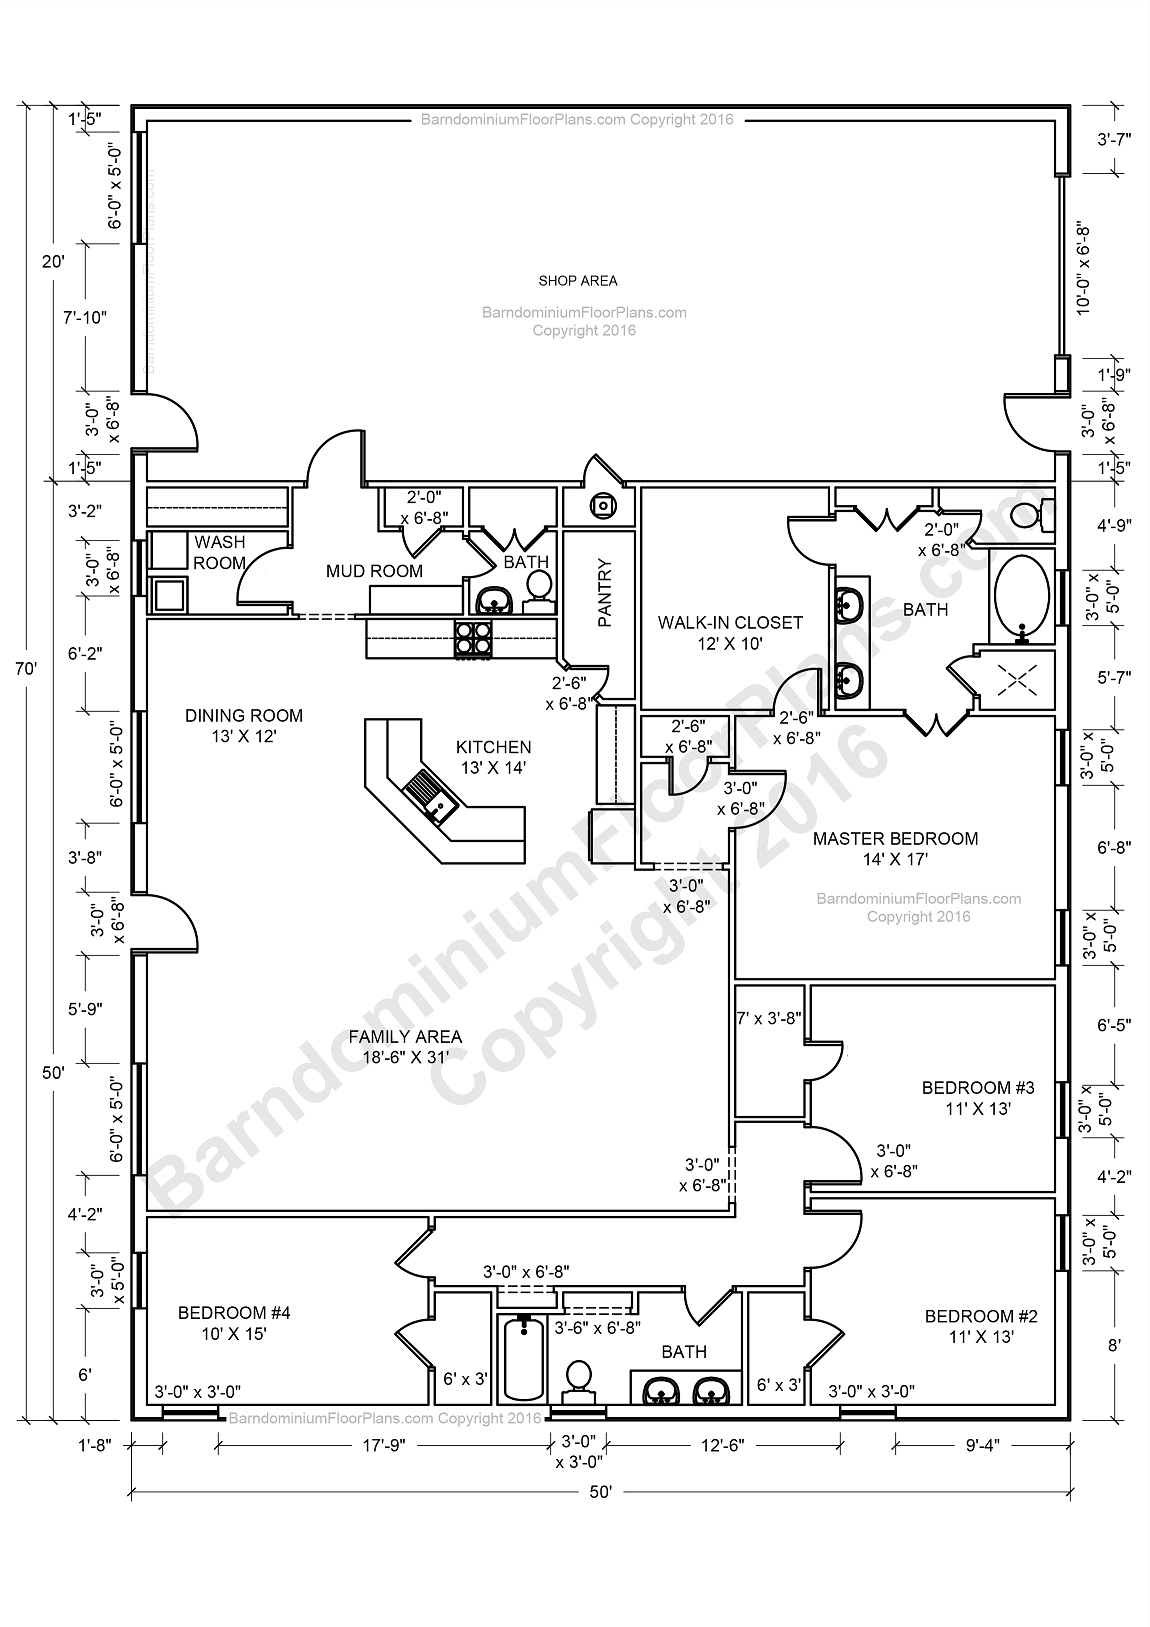 Barndominium floor plans barndominium floor plans 1 800 for Metal building home floor plans